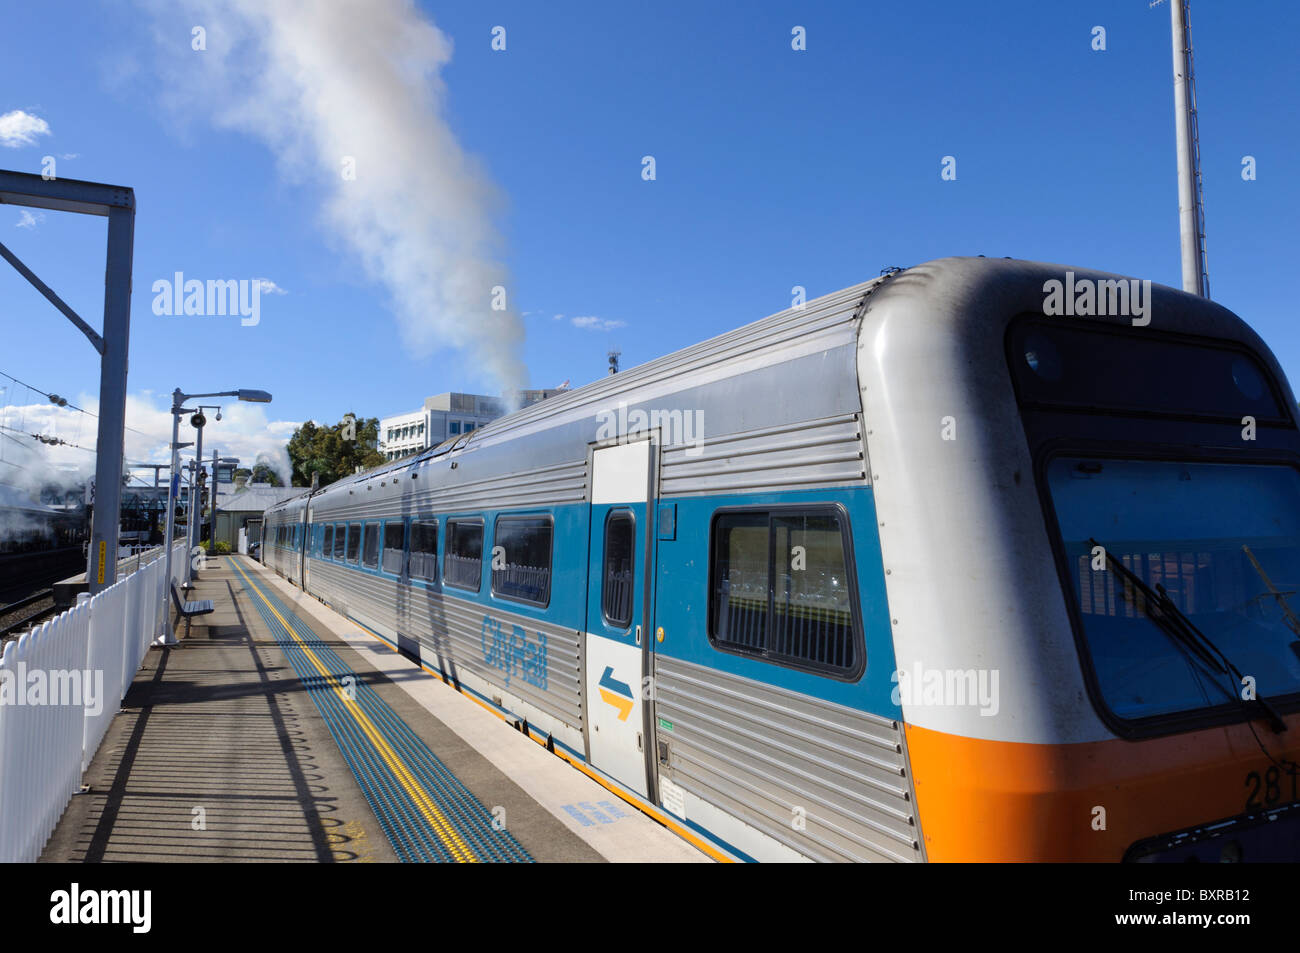 Diesel train producing a plume of smoke before departure from the station platform. Diesel multiple unit; emissions; - Stock Image